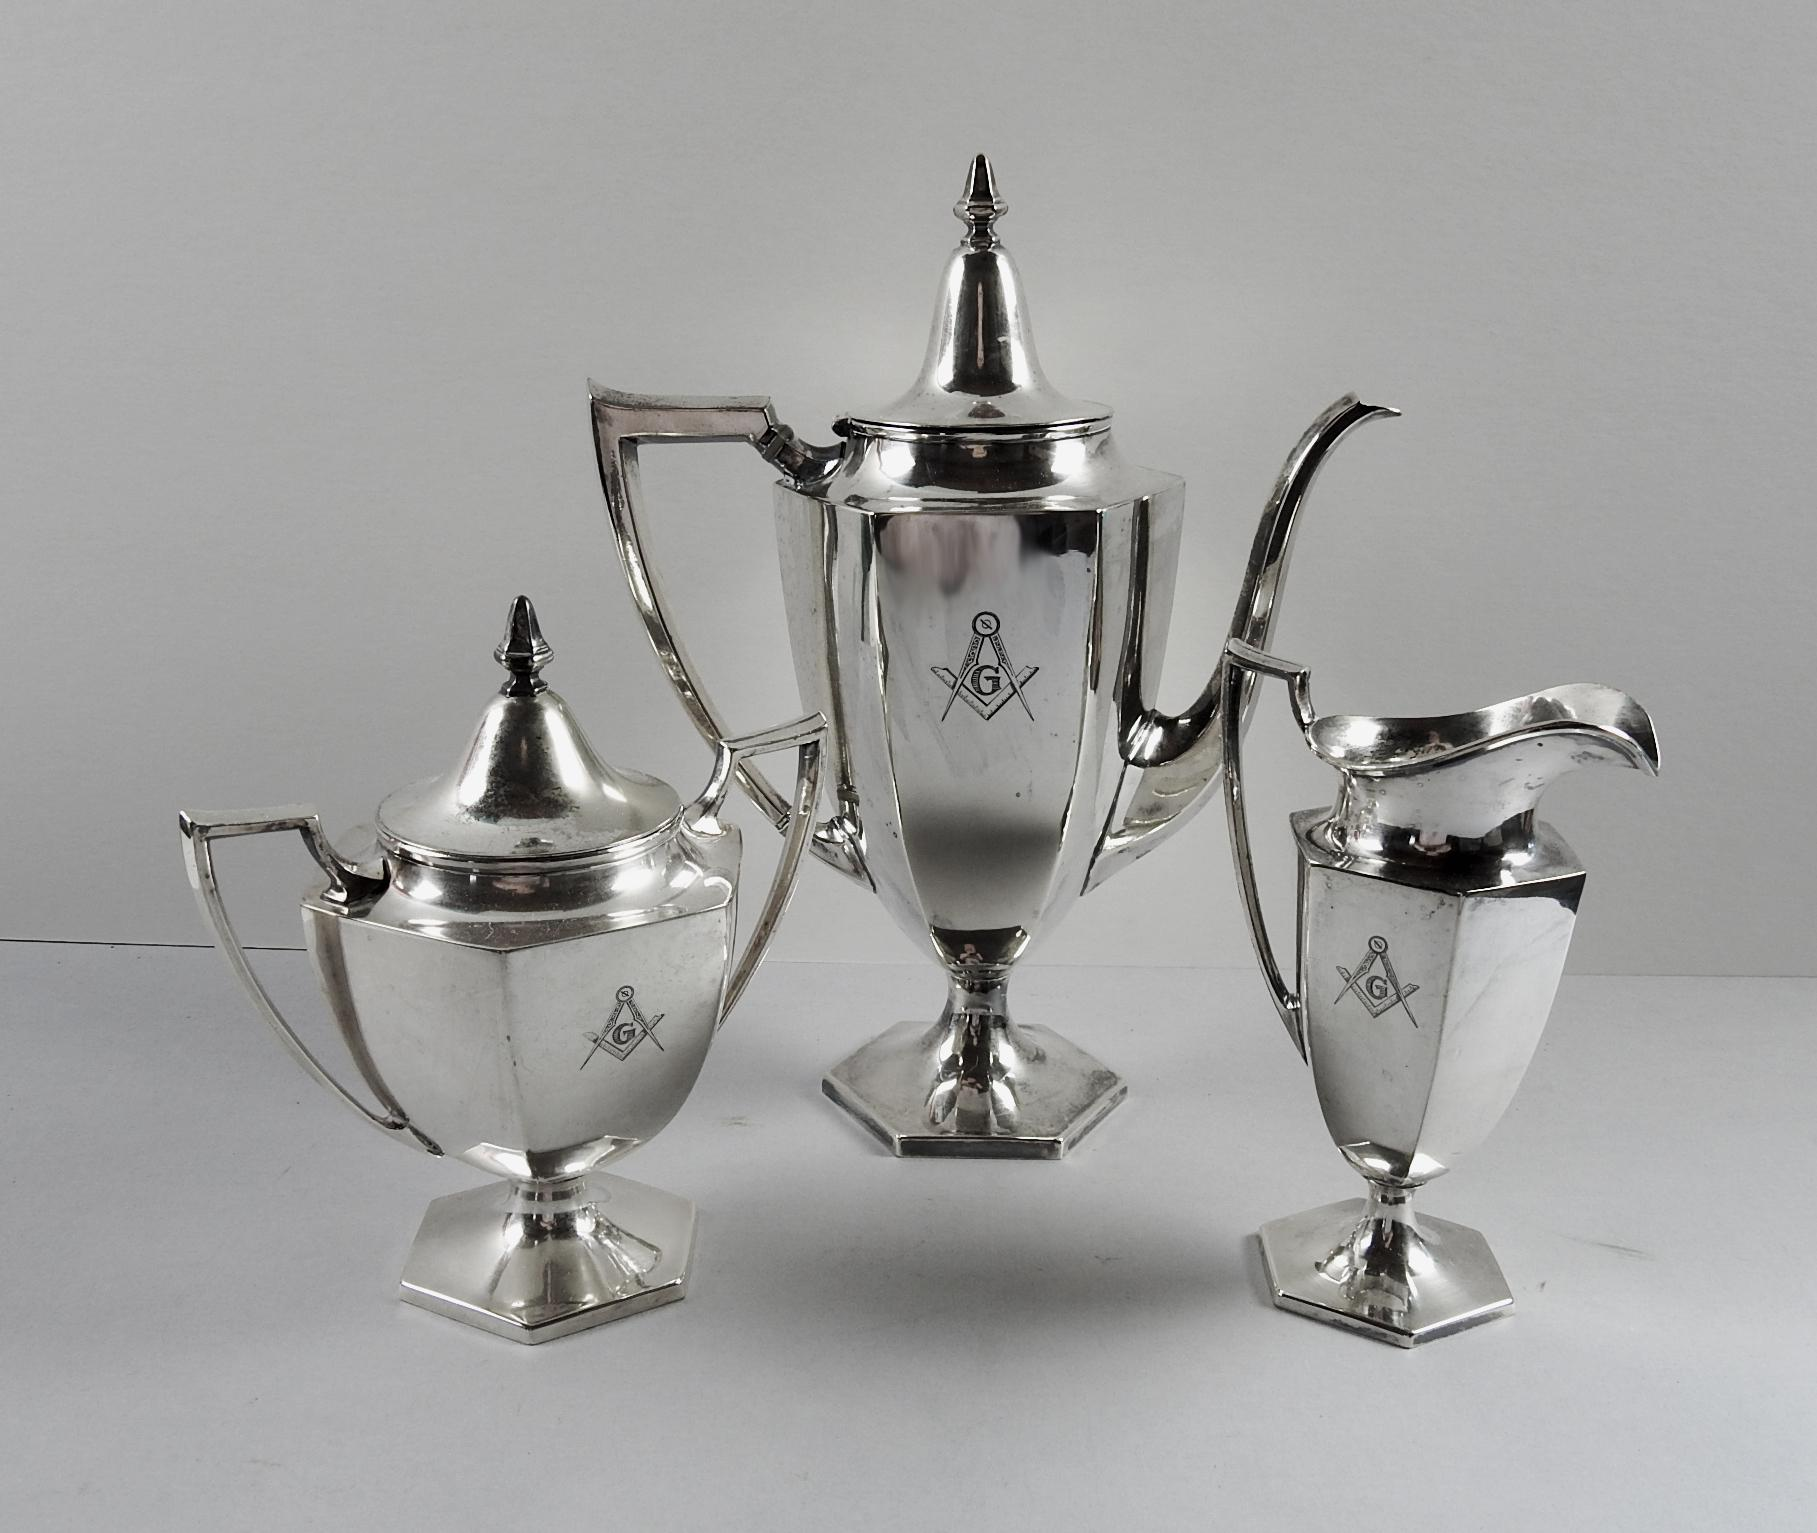 Masonic Engraved Silver-Plate Tea Set - Set of 3 - Image 2 of 4  sc 1 st  Chairish : silver plated tea sets - pezcame.com